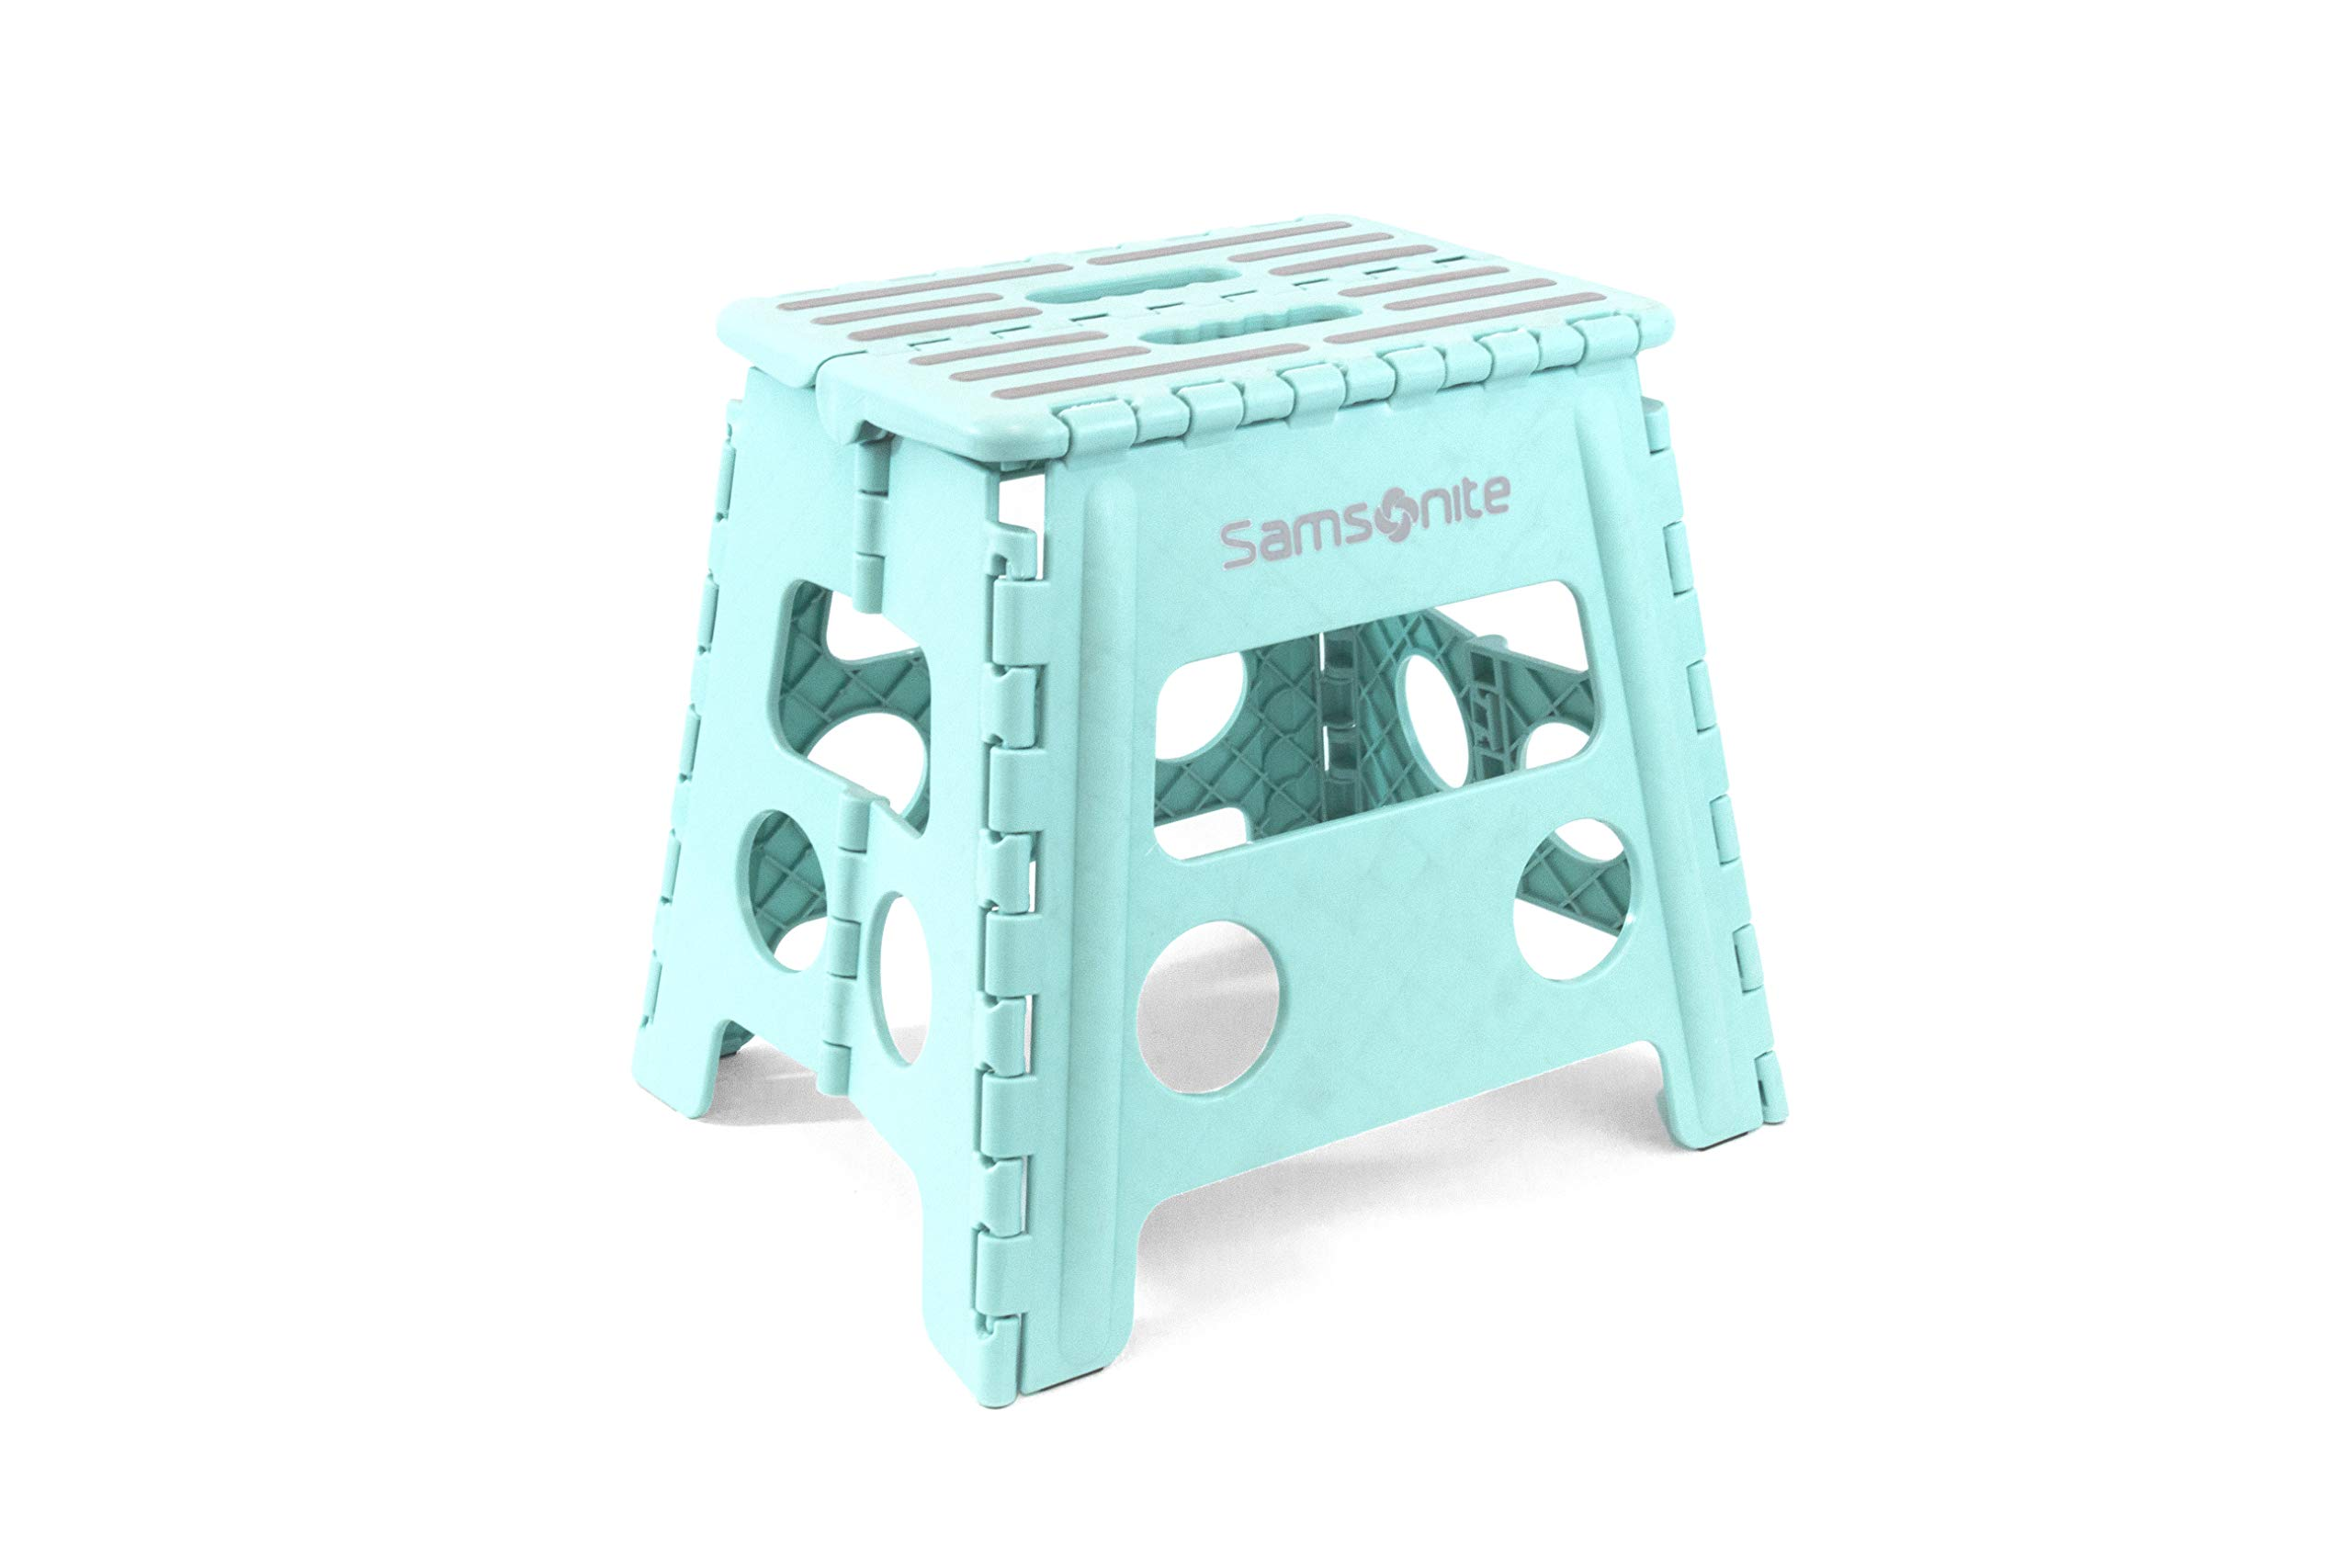 Samsonite Folding Step Stool in Aqua/Teal - 13'' High Double Handle - Heavy Duty - Holds up to 330 lbs by Samsonite (Image #1)